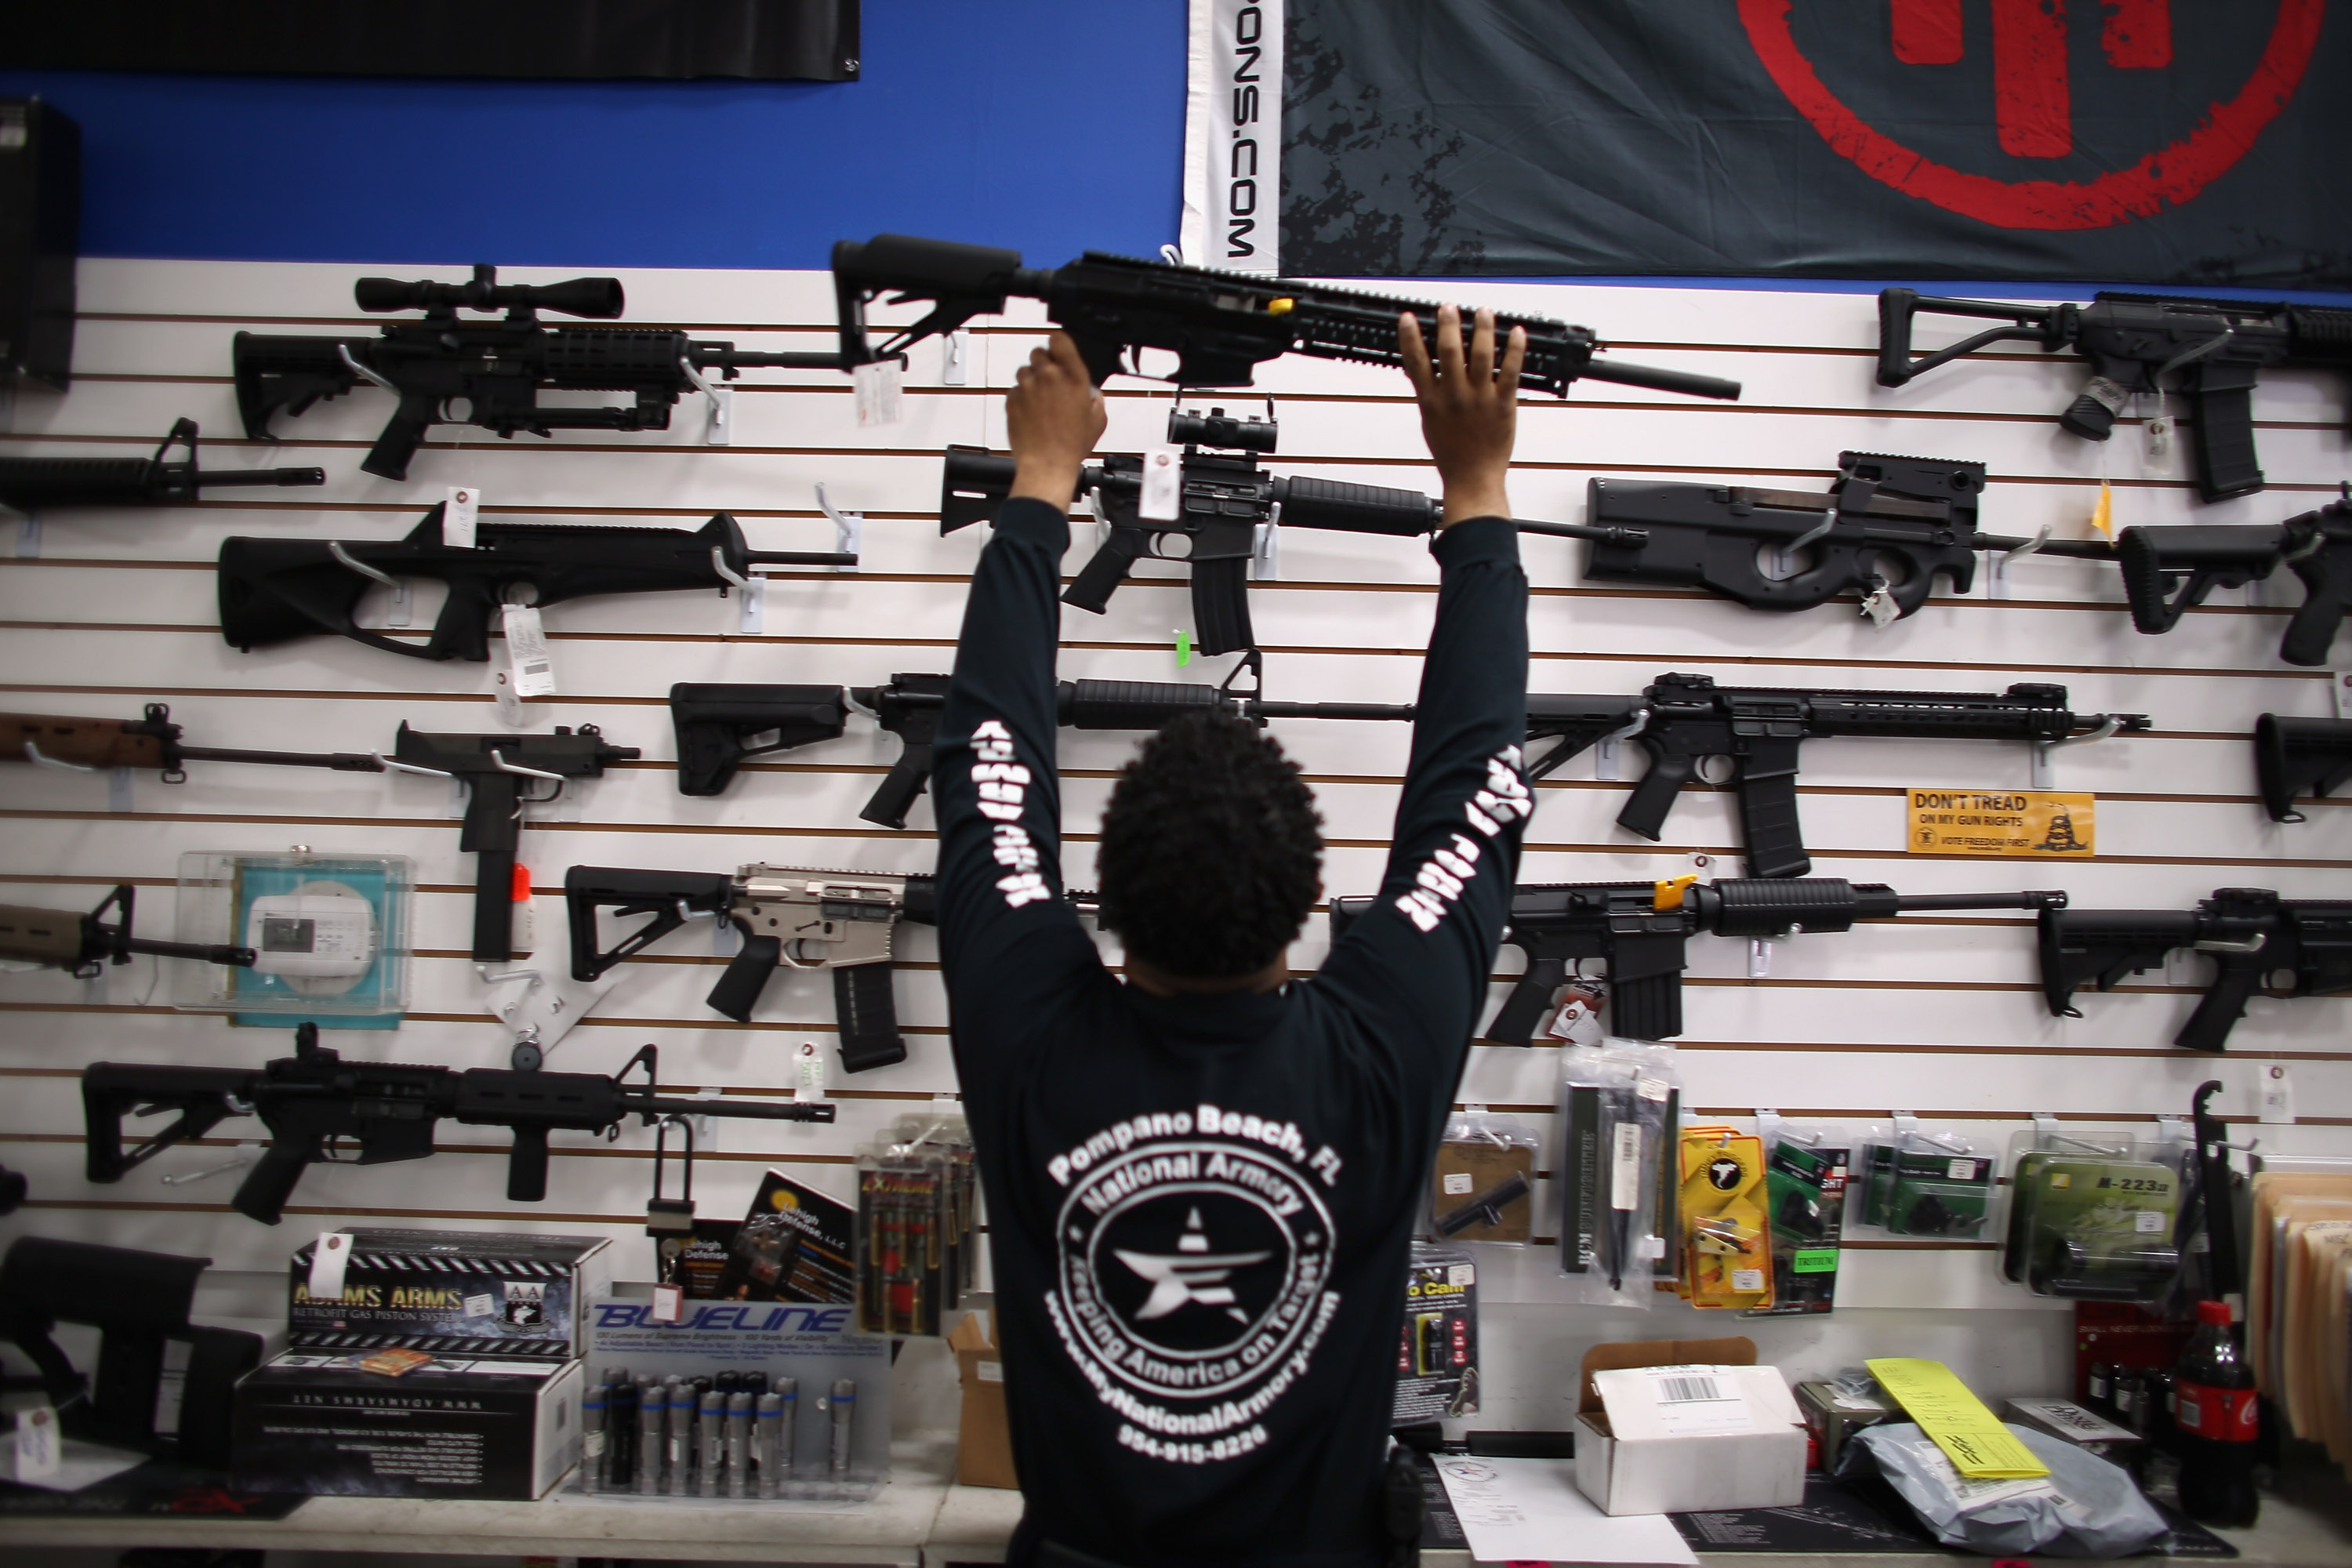 Should Homicide Victims Families be allowed to sue the gun manufactures?